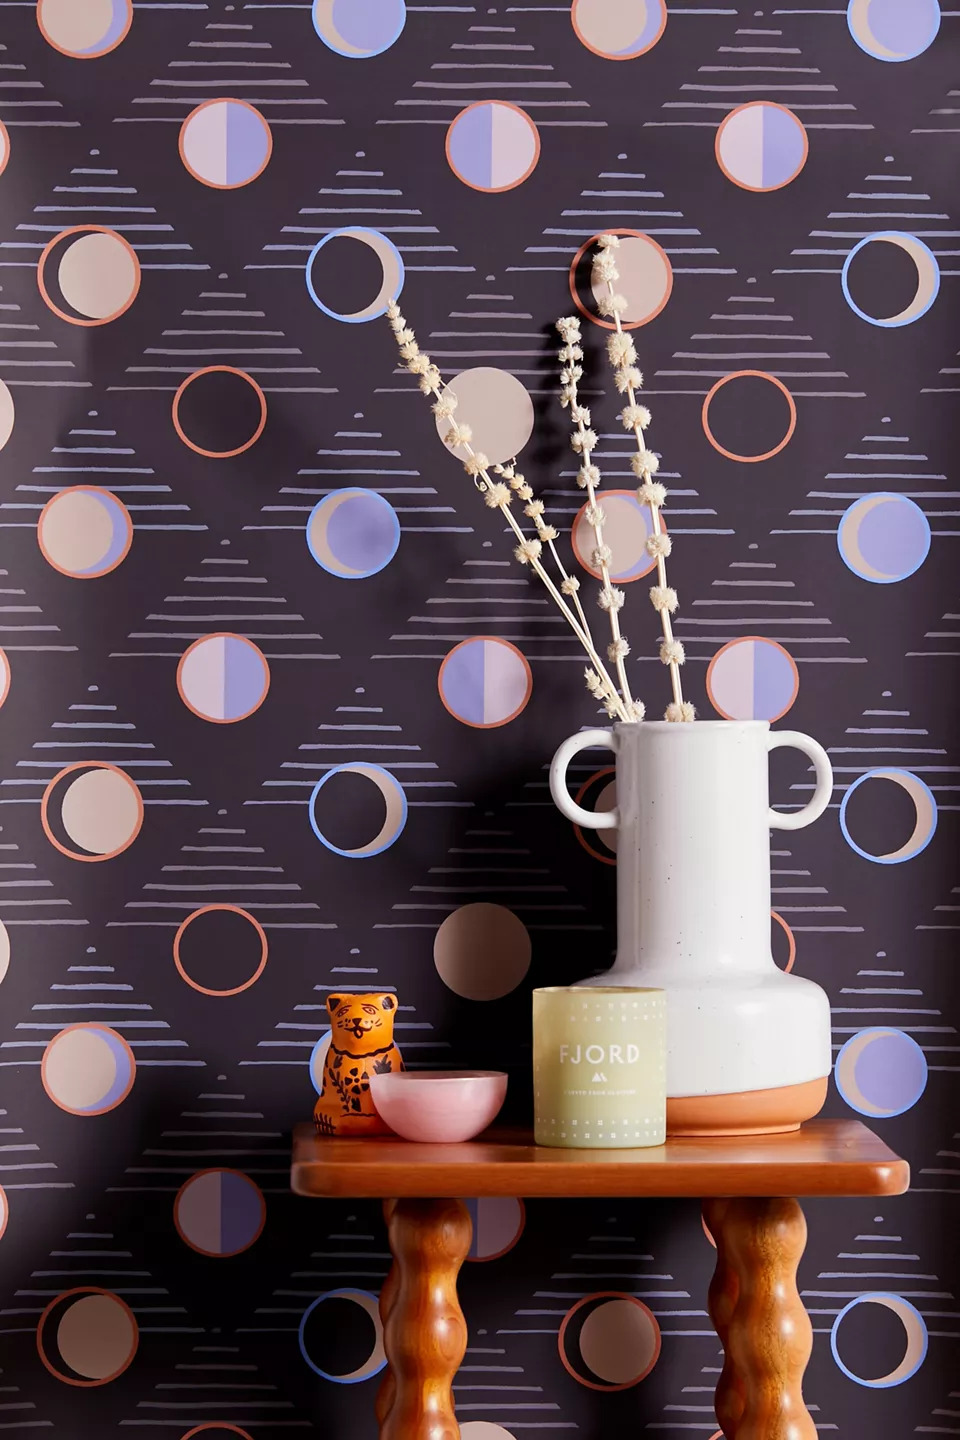 Add a Modern Touch With Stylish Moon Wallpaper